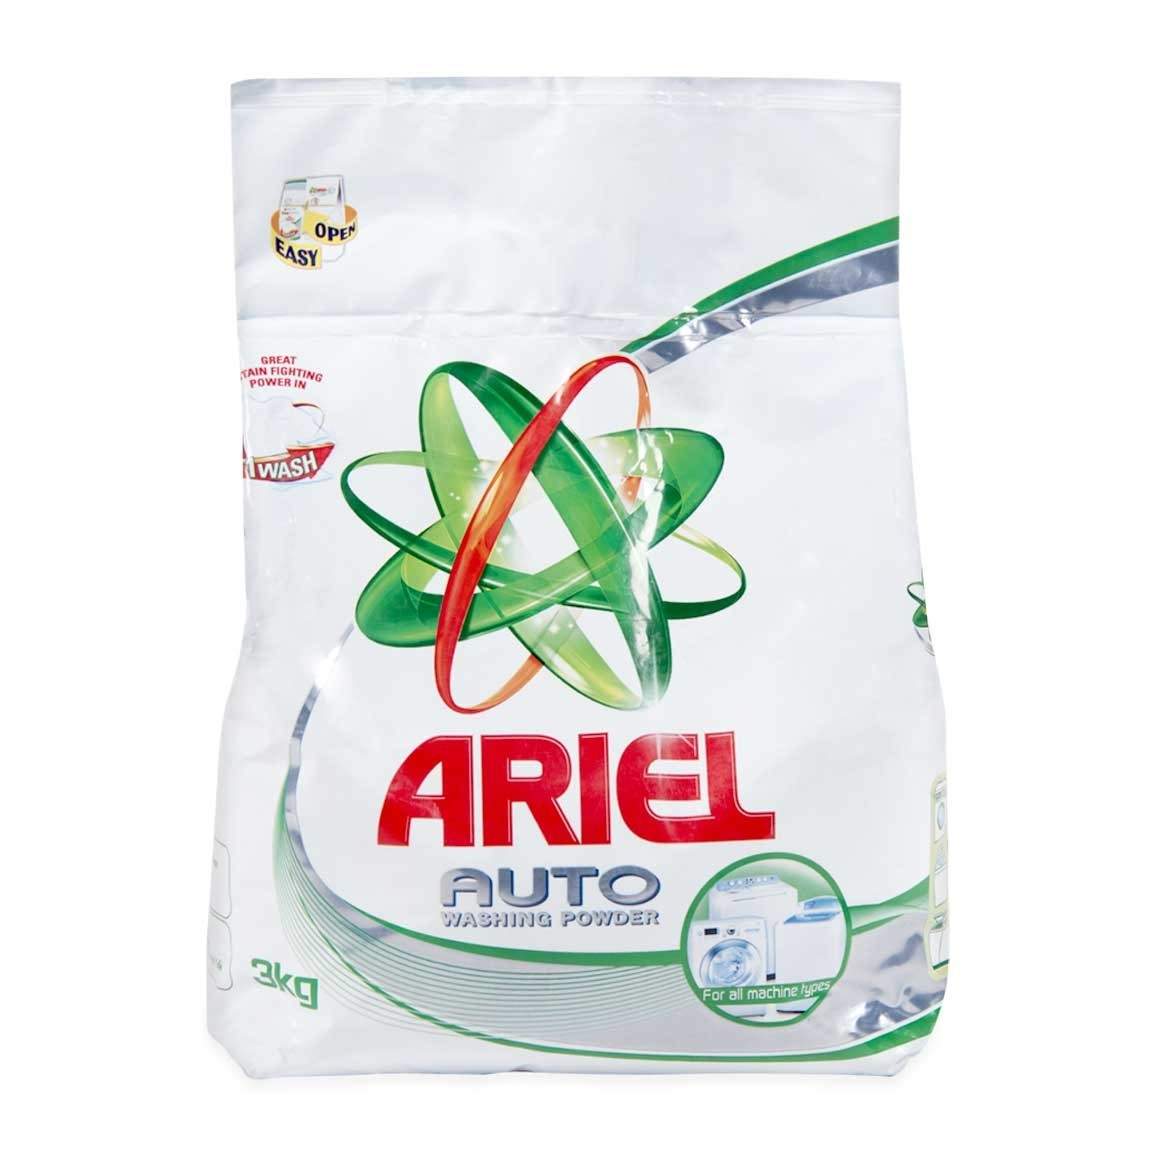 p g ariel detergent Joining tide and ariel in the unit dose laundry detergent segment, one   through links from our website at: wwwpgcom/investors copies of.